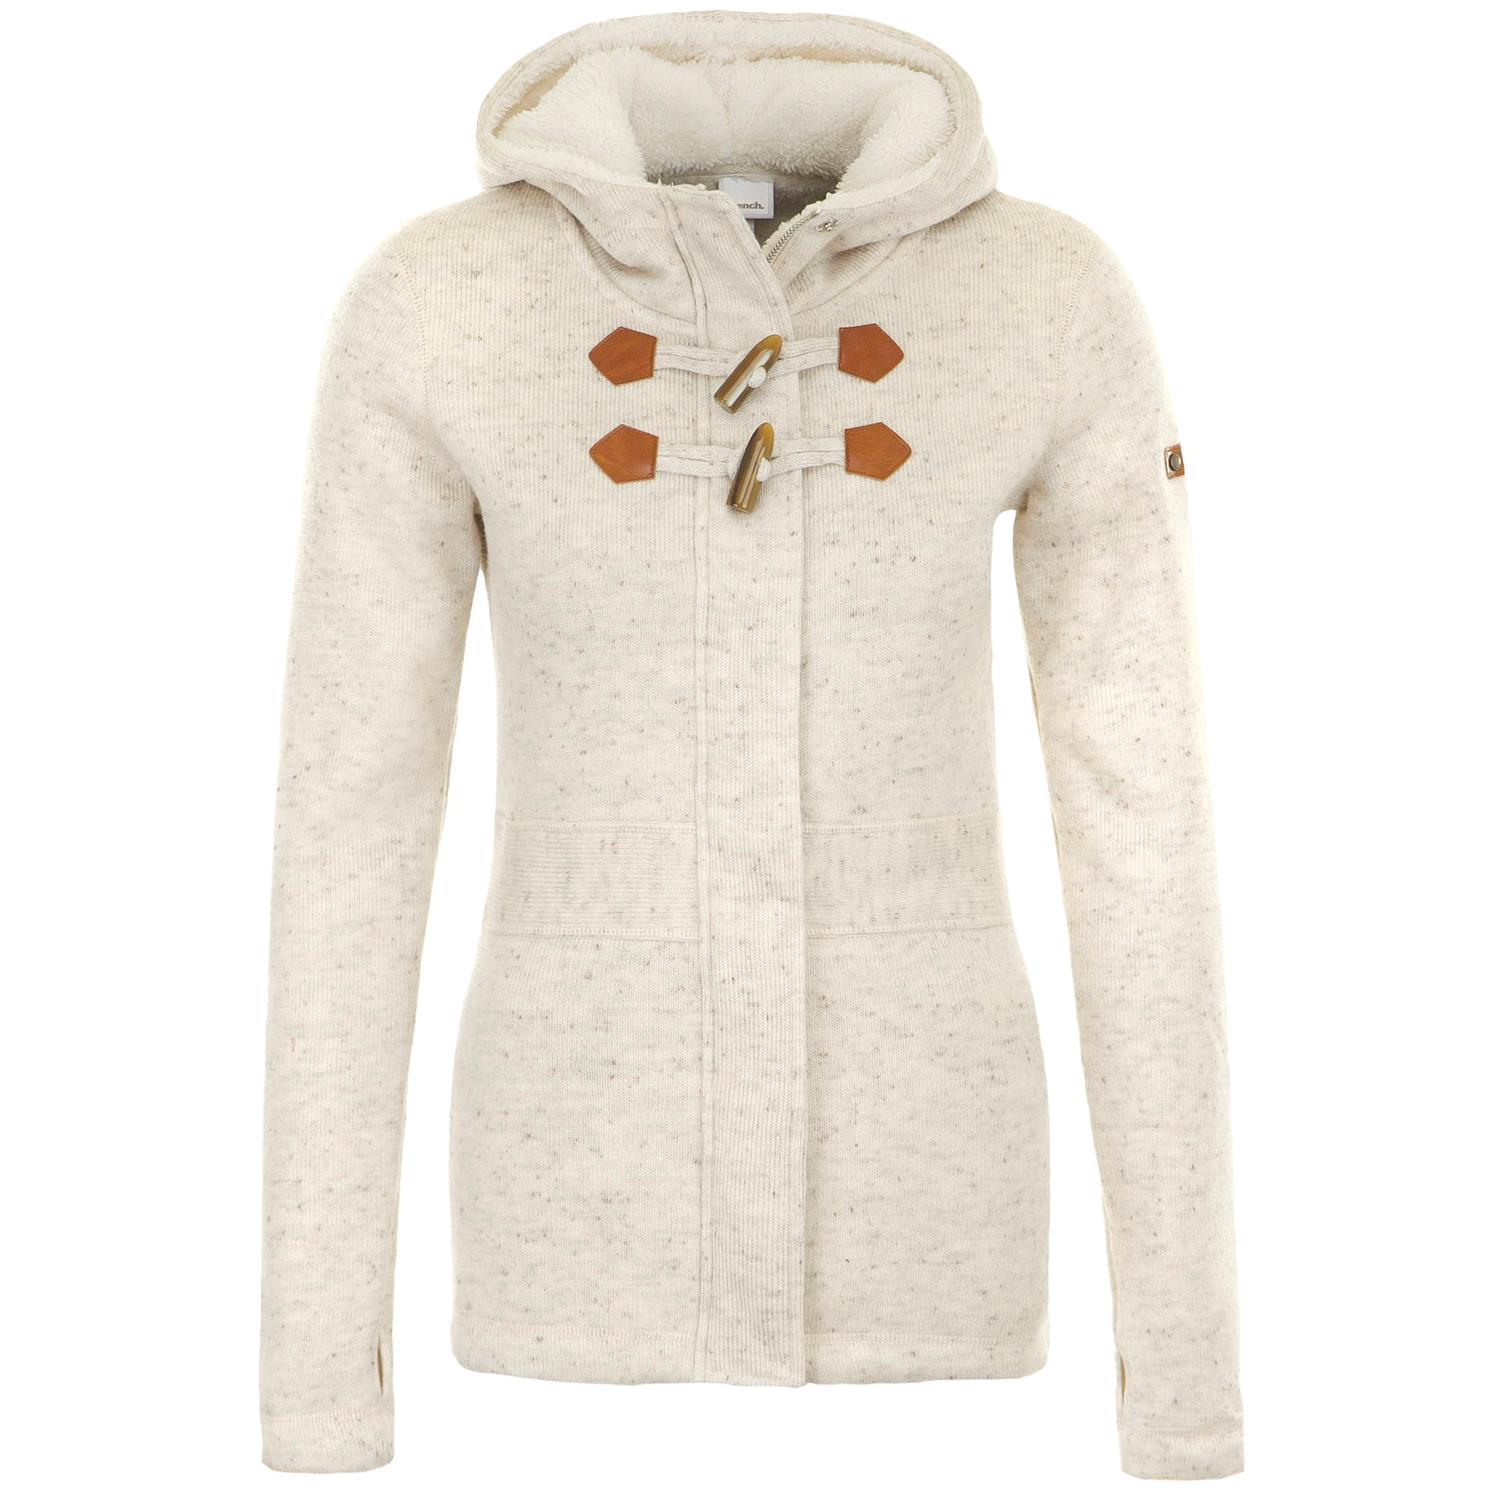 Bench Womens Jackets Cheap Online Clothing Stores